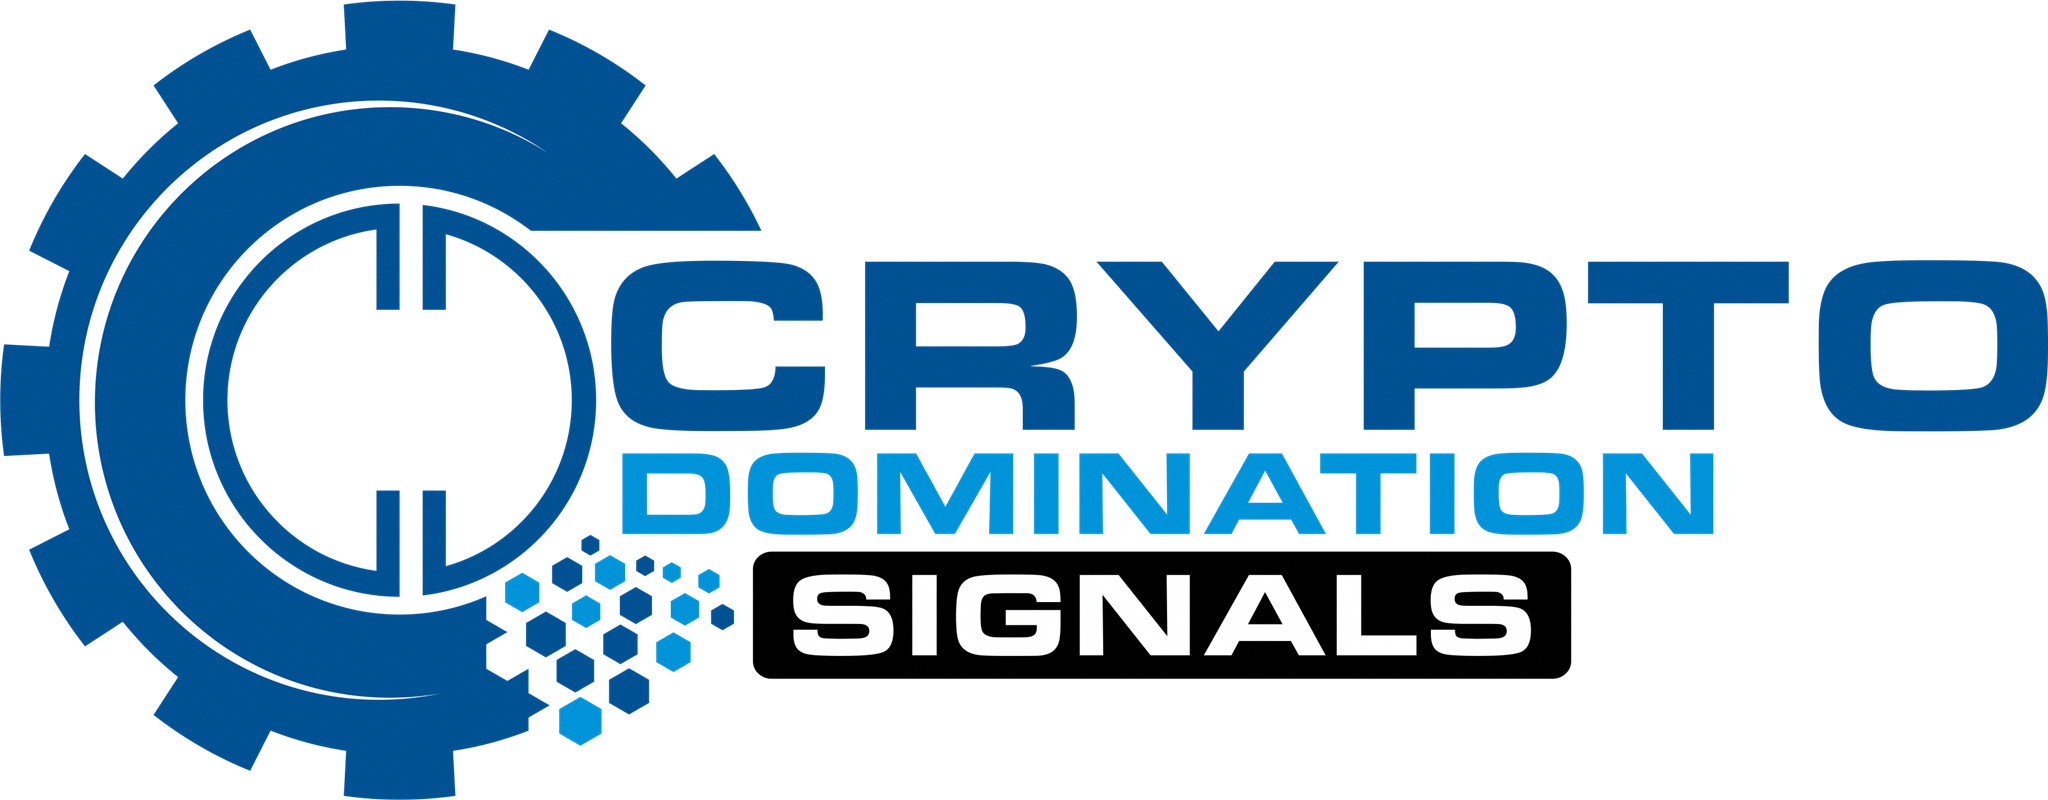 Crypto Domination Signals provides education and training to people